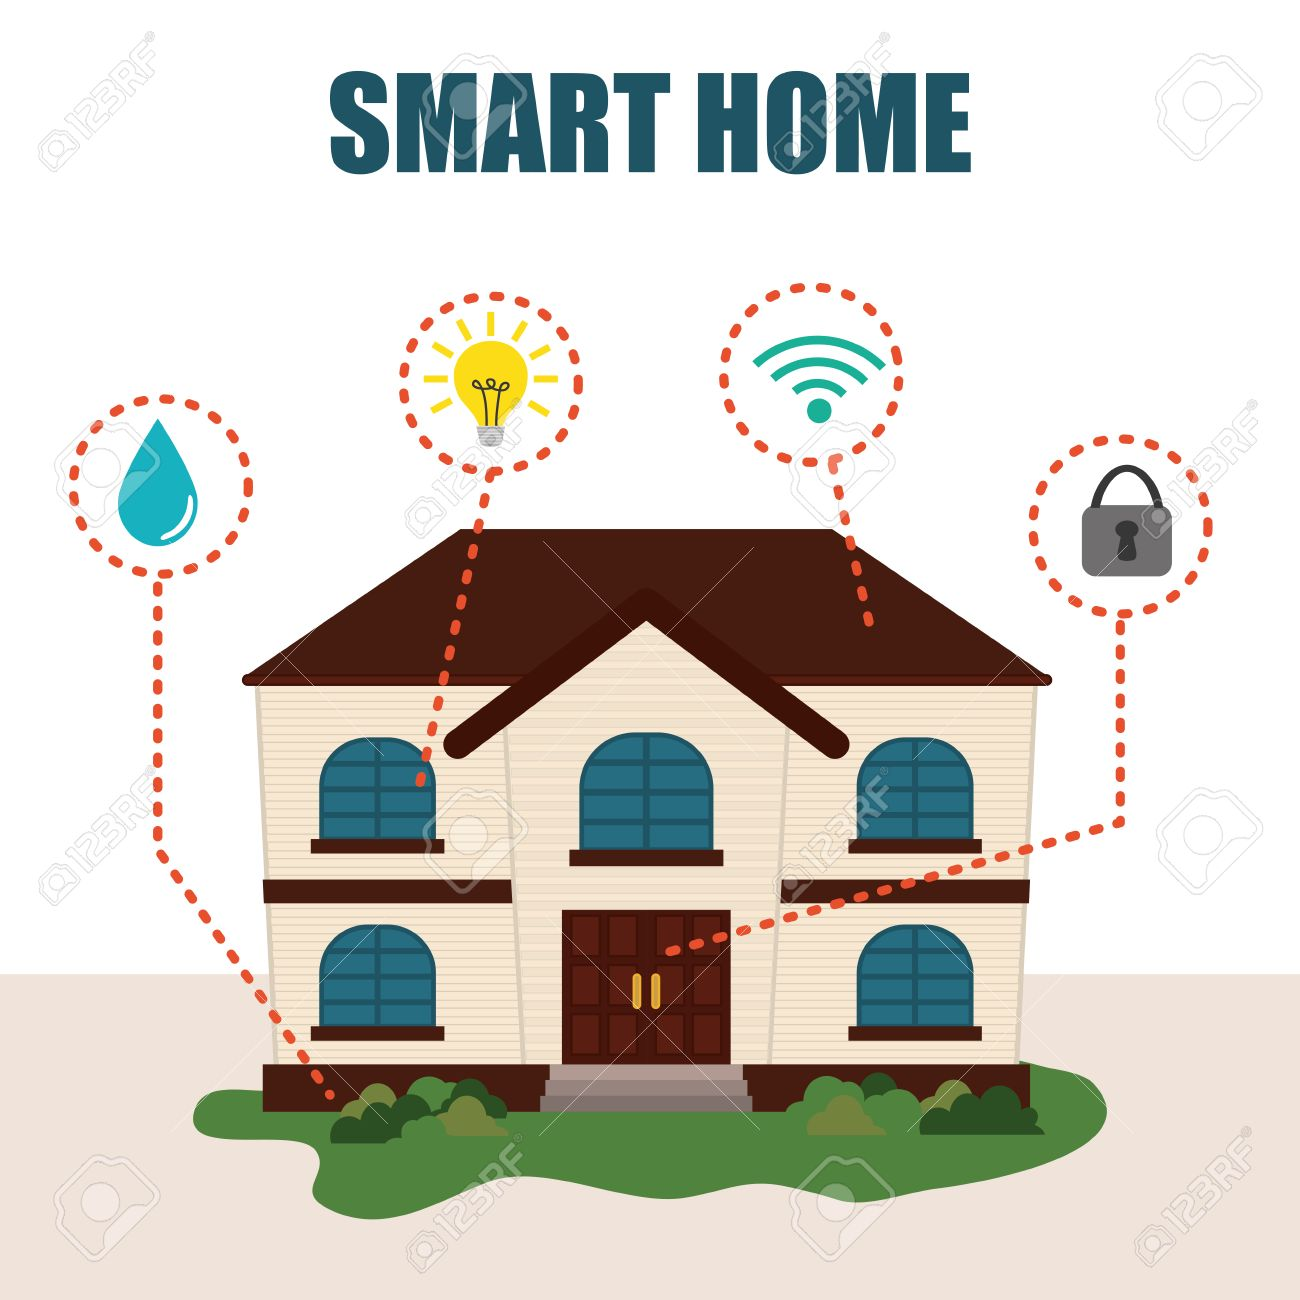 vector smart home design vector illustration eps10 graphic - Smart Home Design